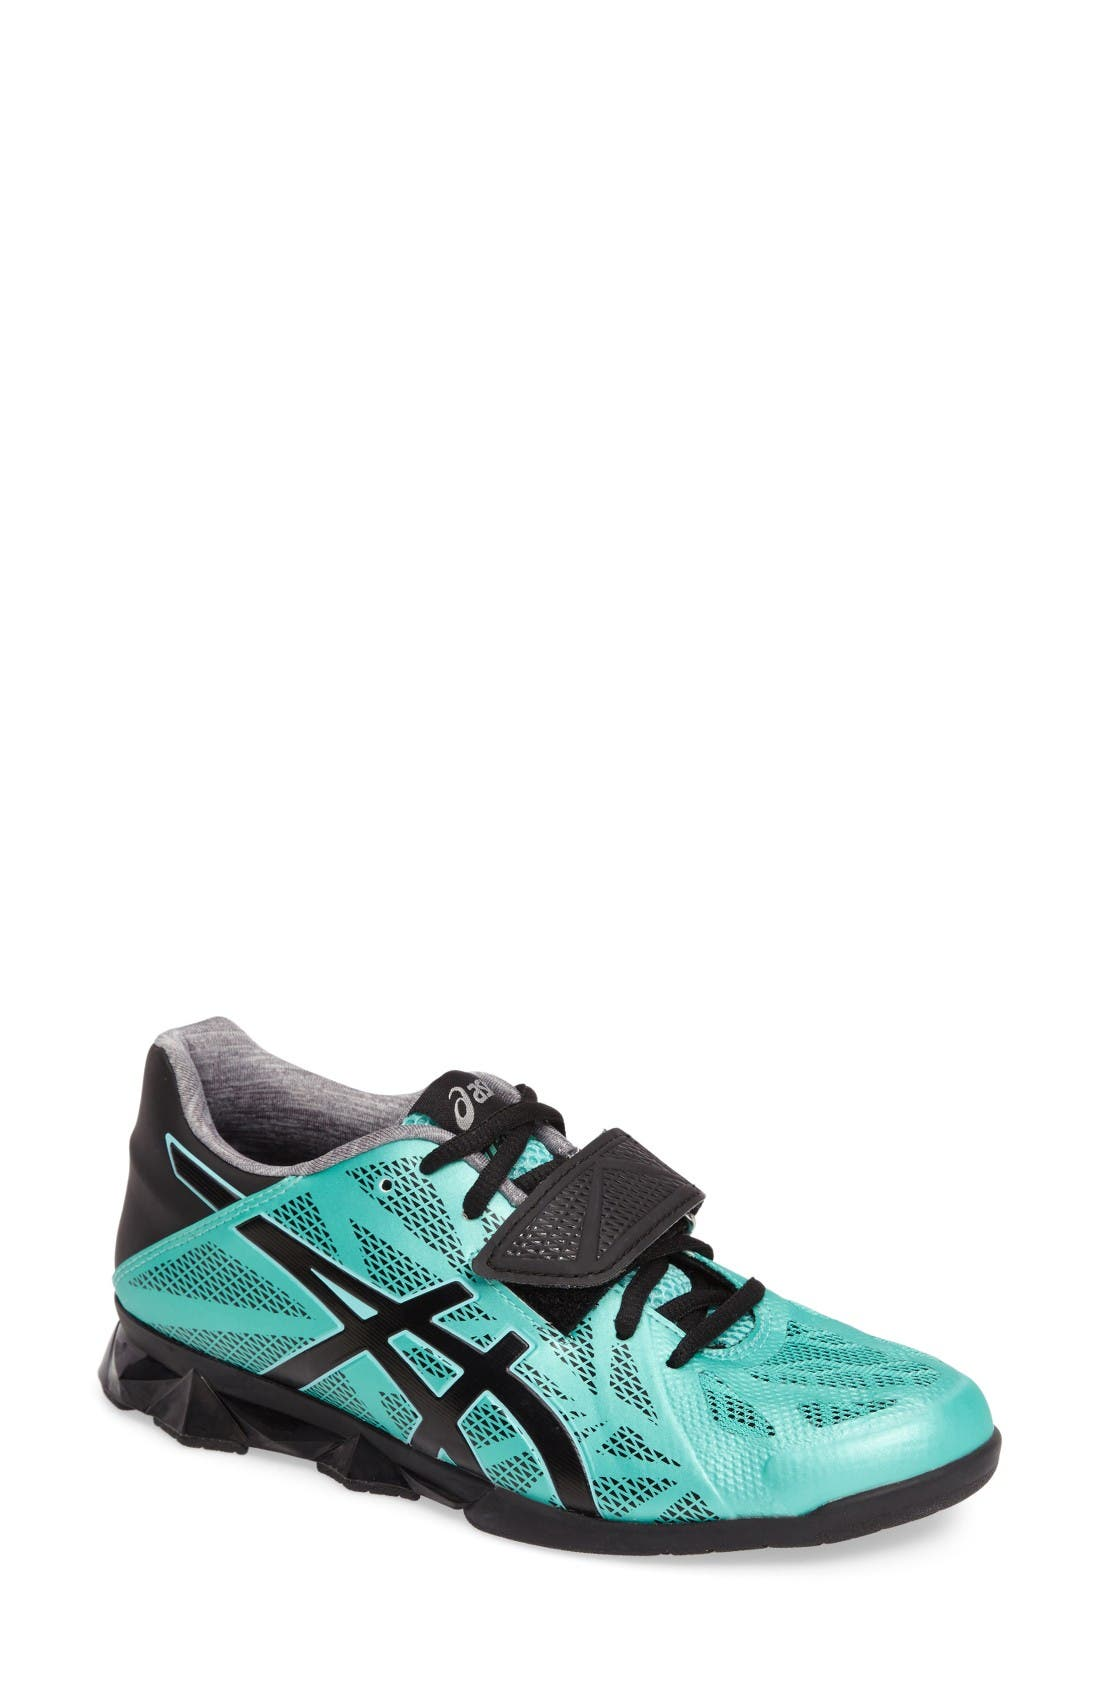 Main Image - ASICS® Lift Master Lite Training Shoe (Women)